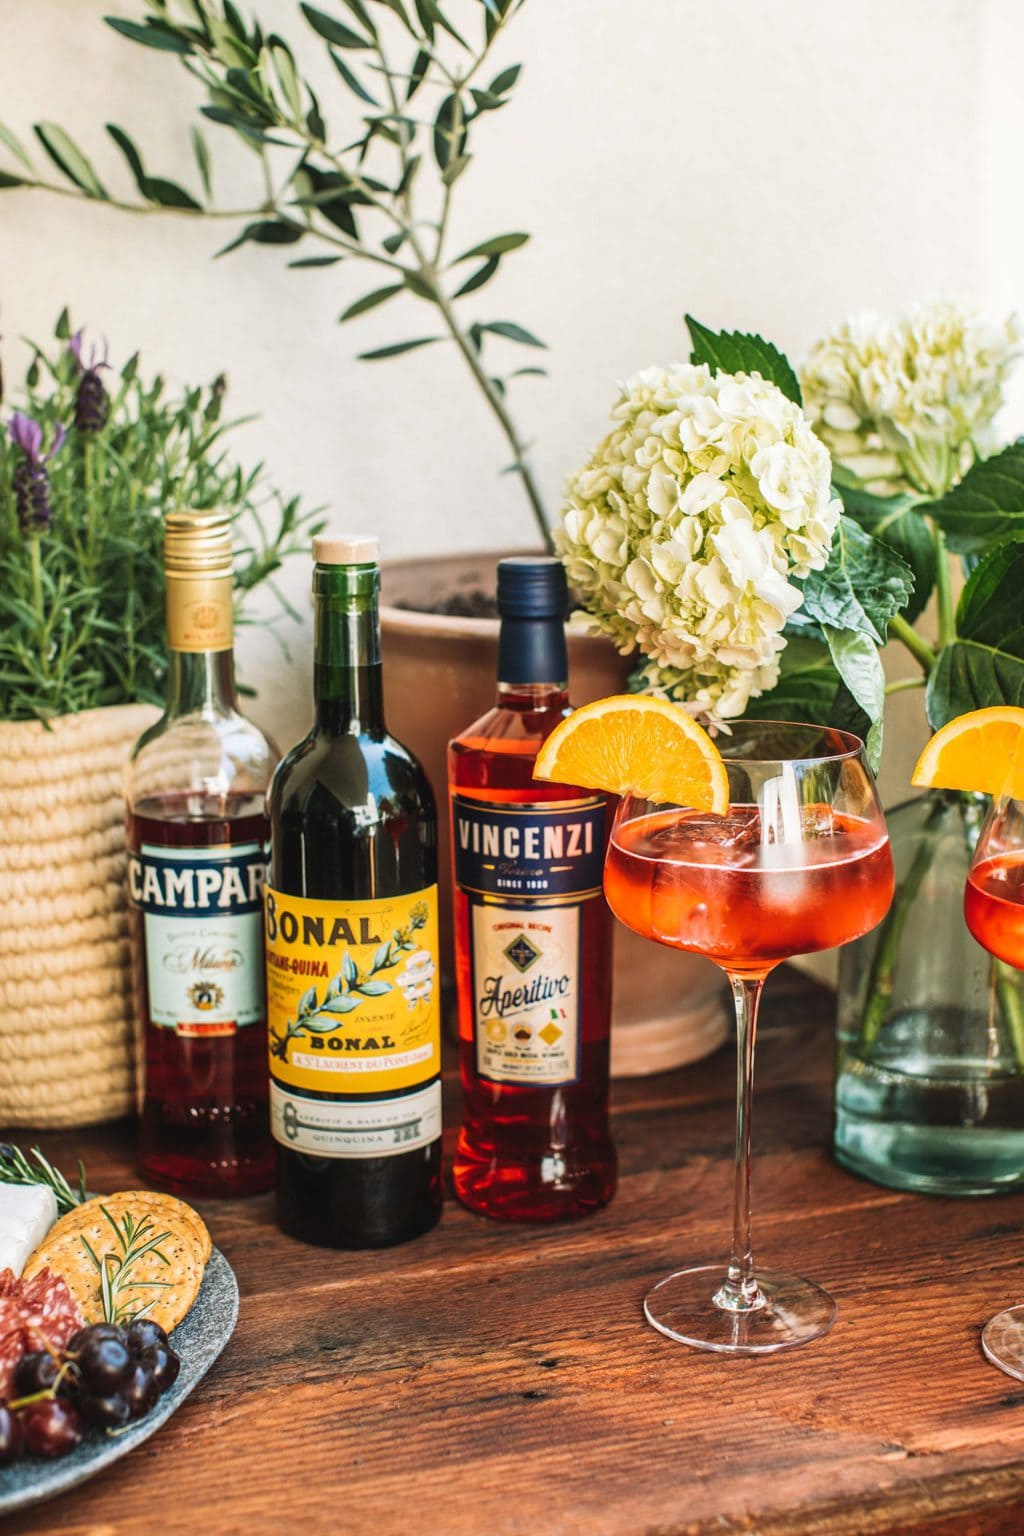 On the wooden pizza table are three different bottles of aperol and a glass made with an aperol spritz.